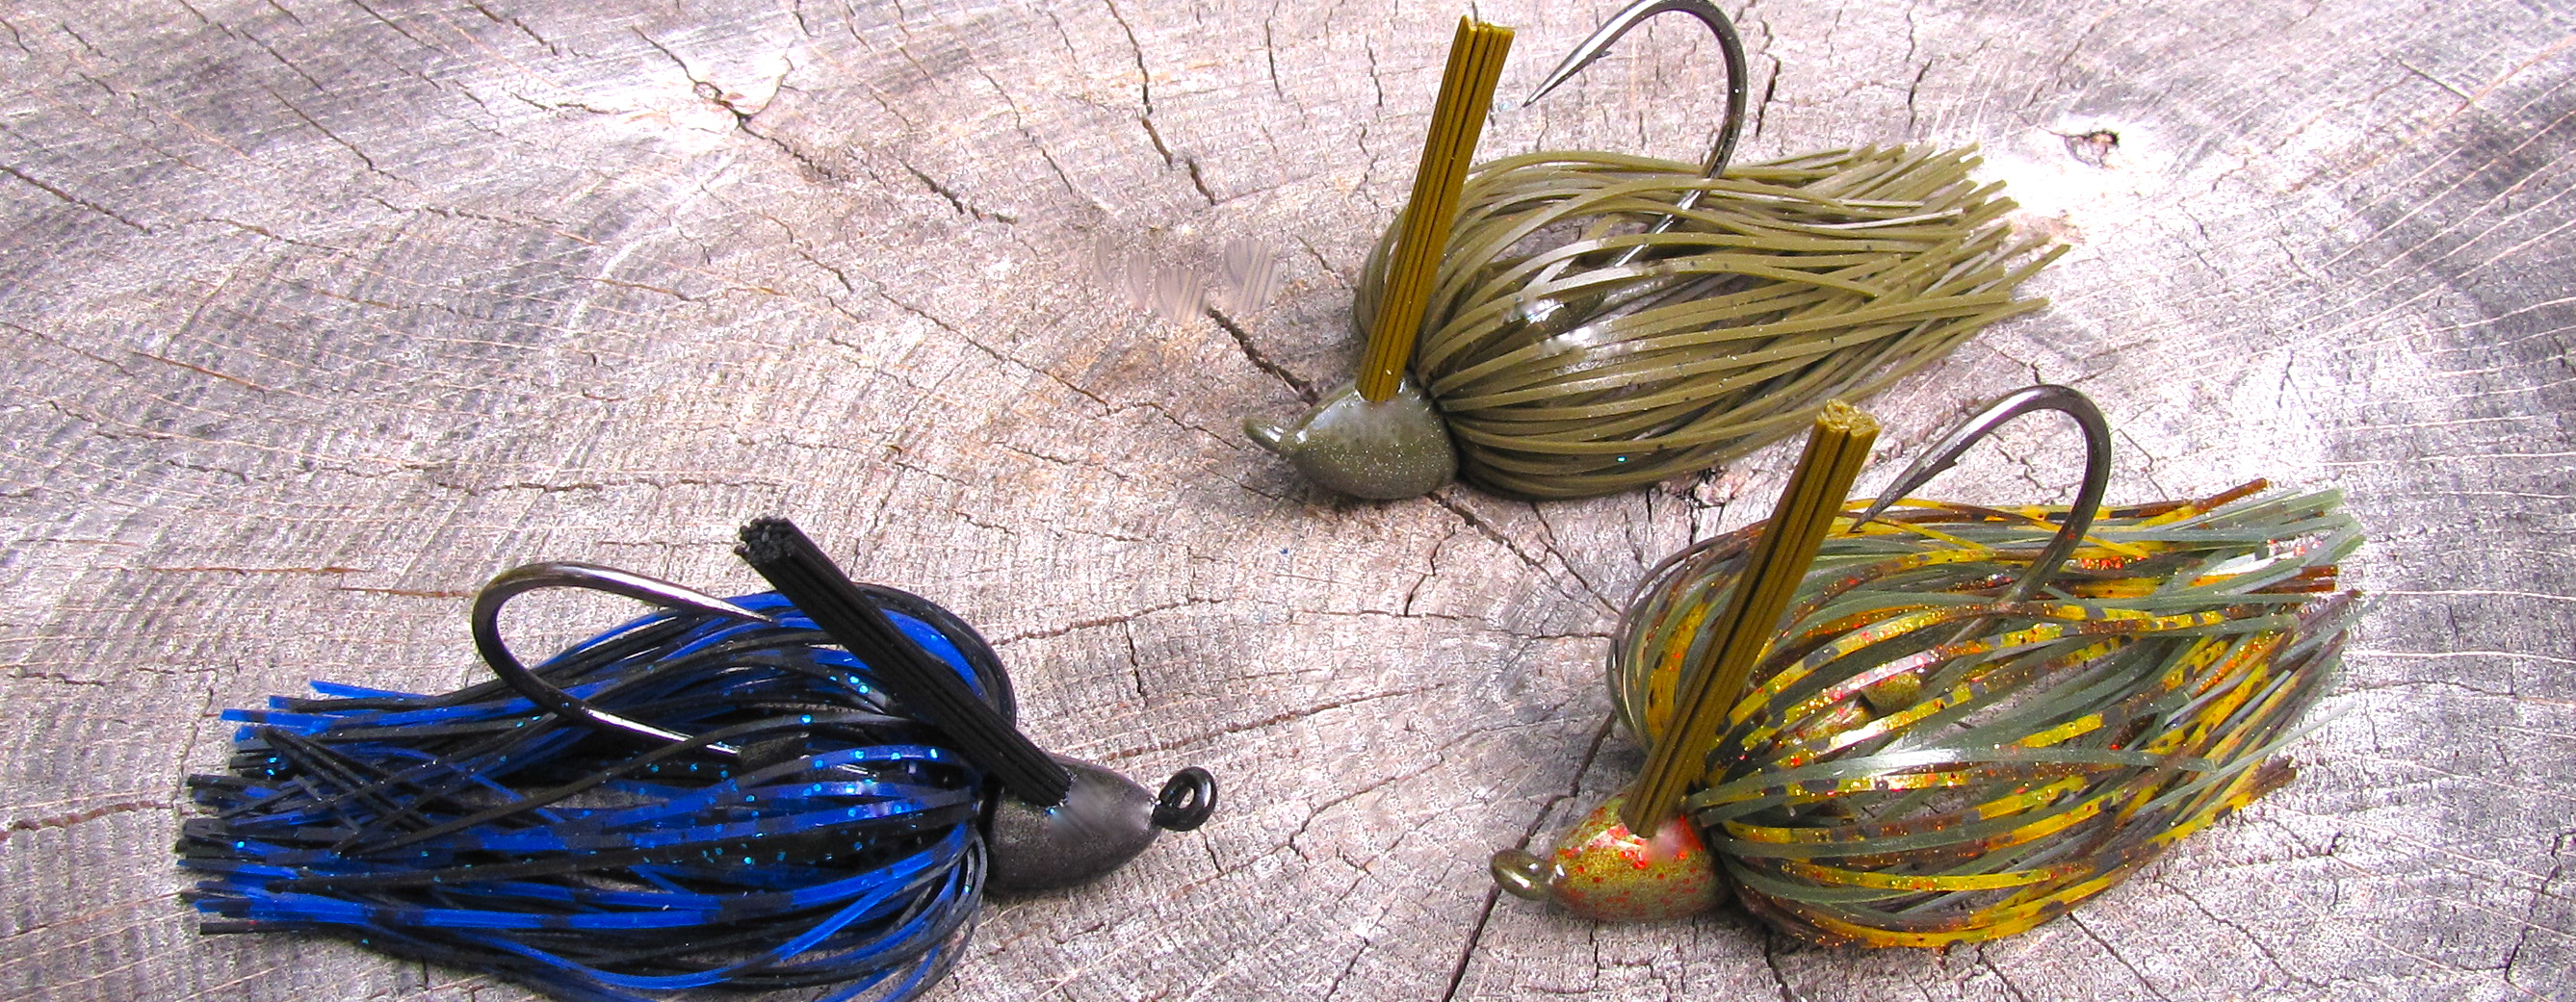 Fishing Frugal Lures Lil Bitty Jigs